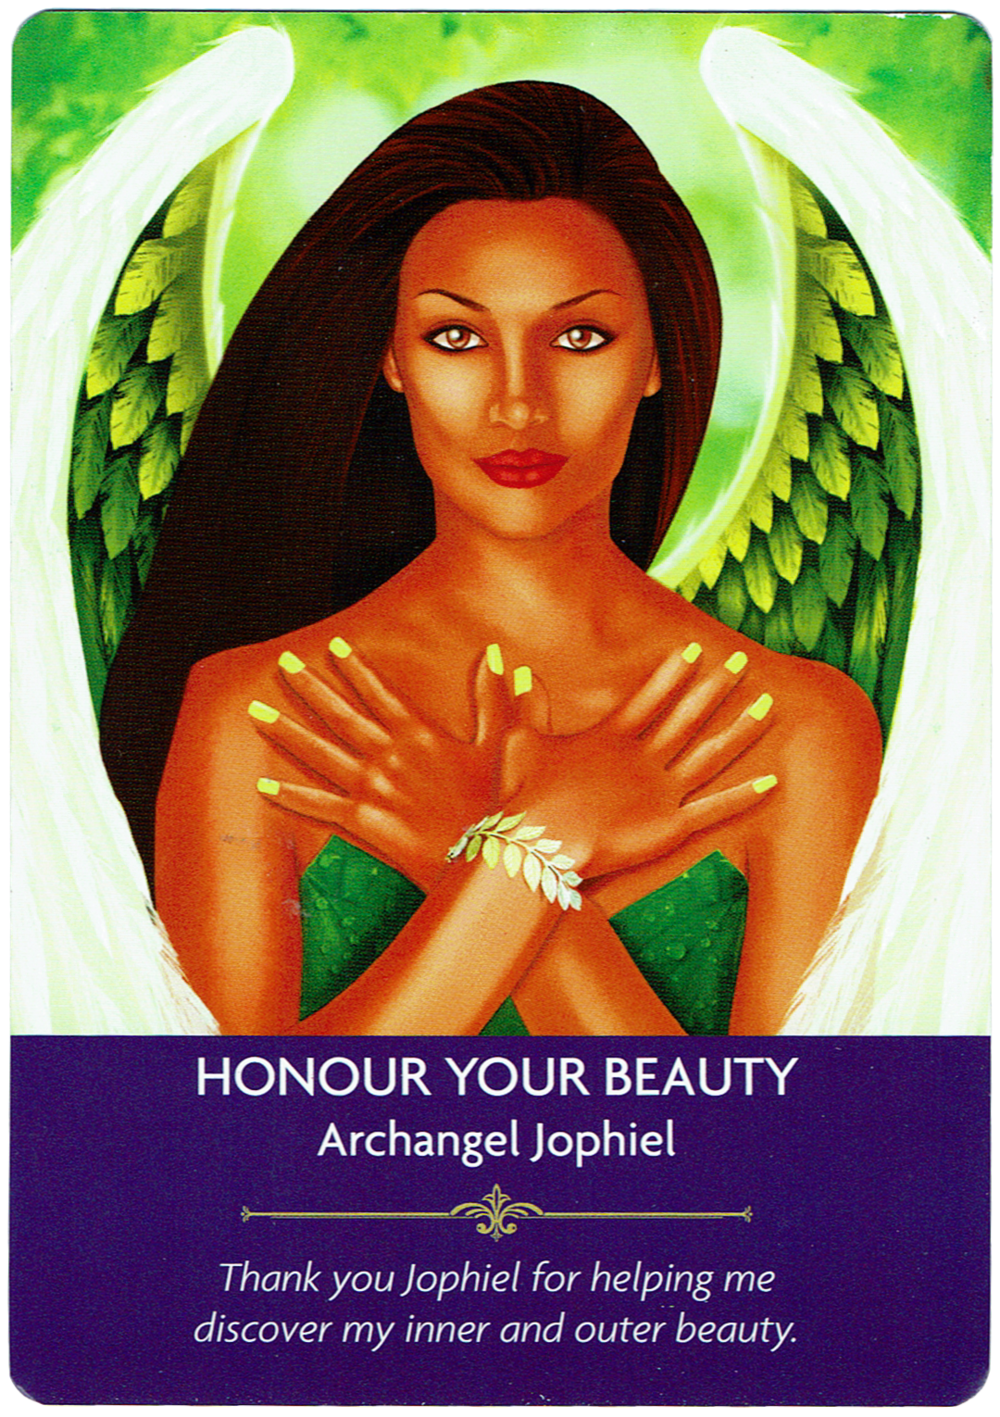 Honour Your Beauty - Archangel Jophiel